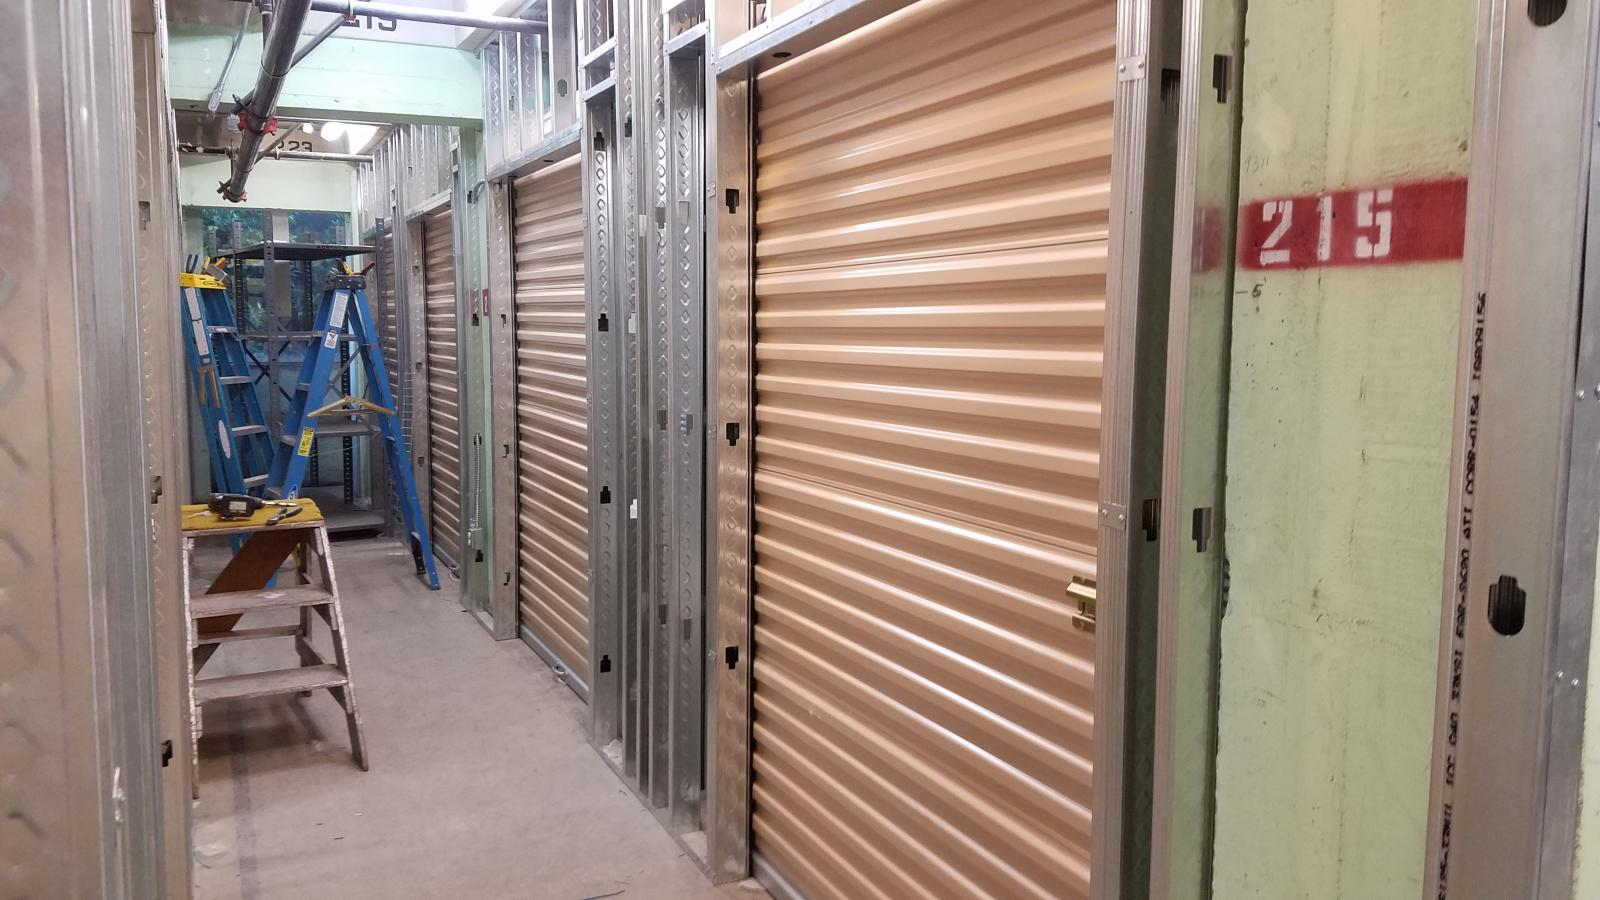 South Beverly Drive Storage remodel in progress